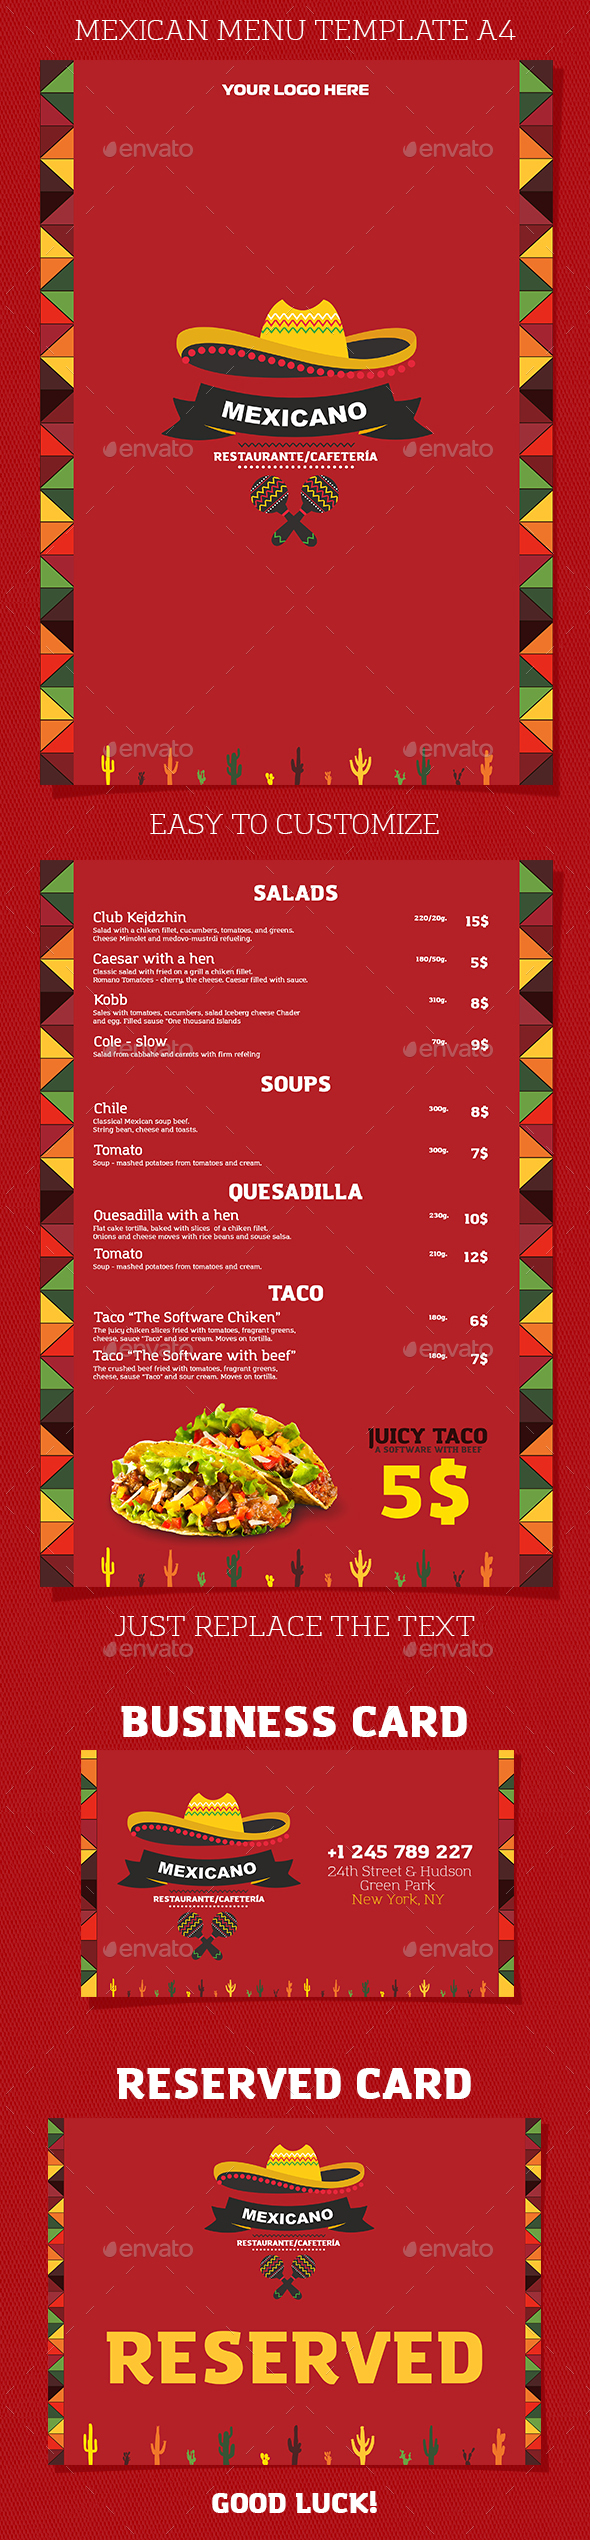 Mexican Restaurant or Cafe Menu